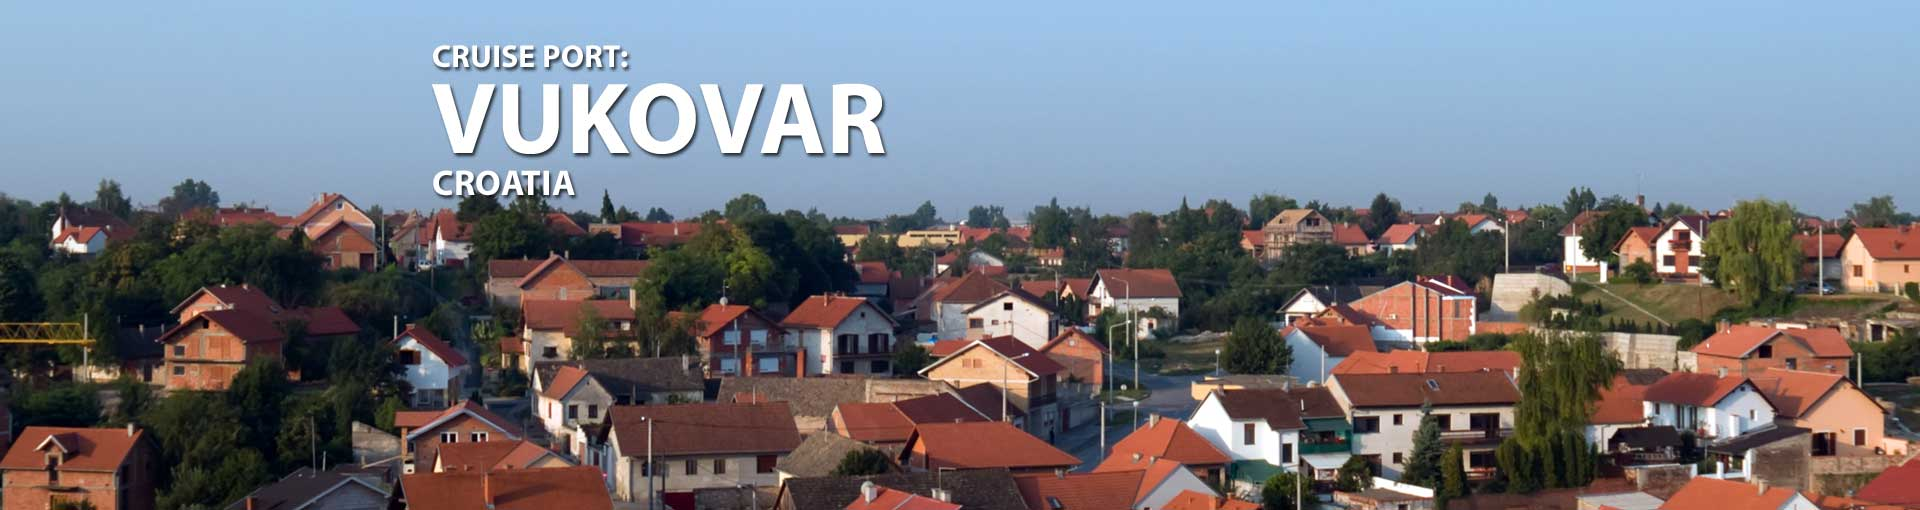 Cruises to Vukovar, Croatia